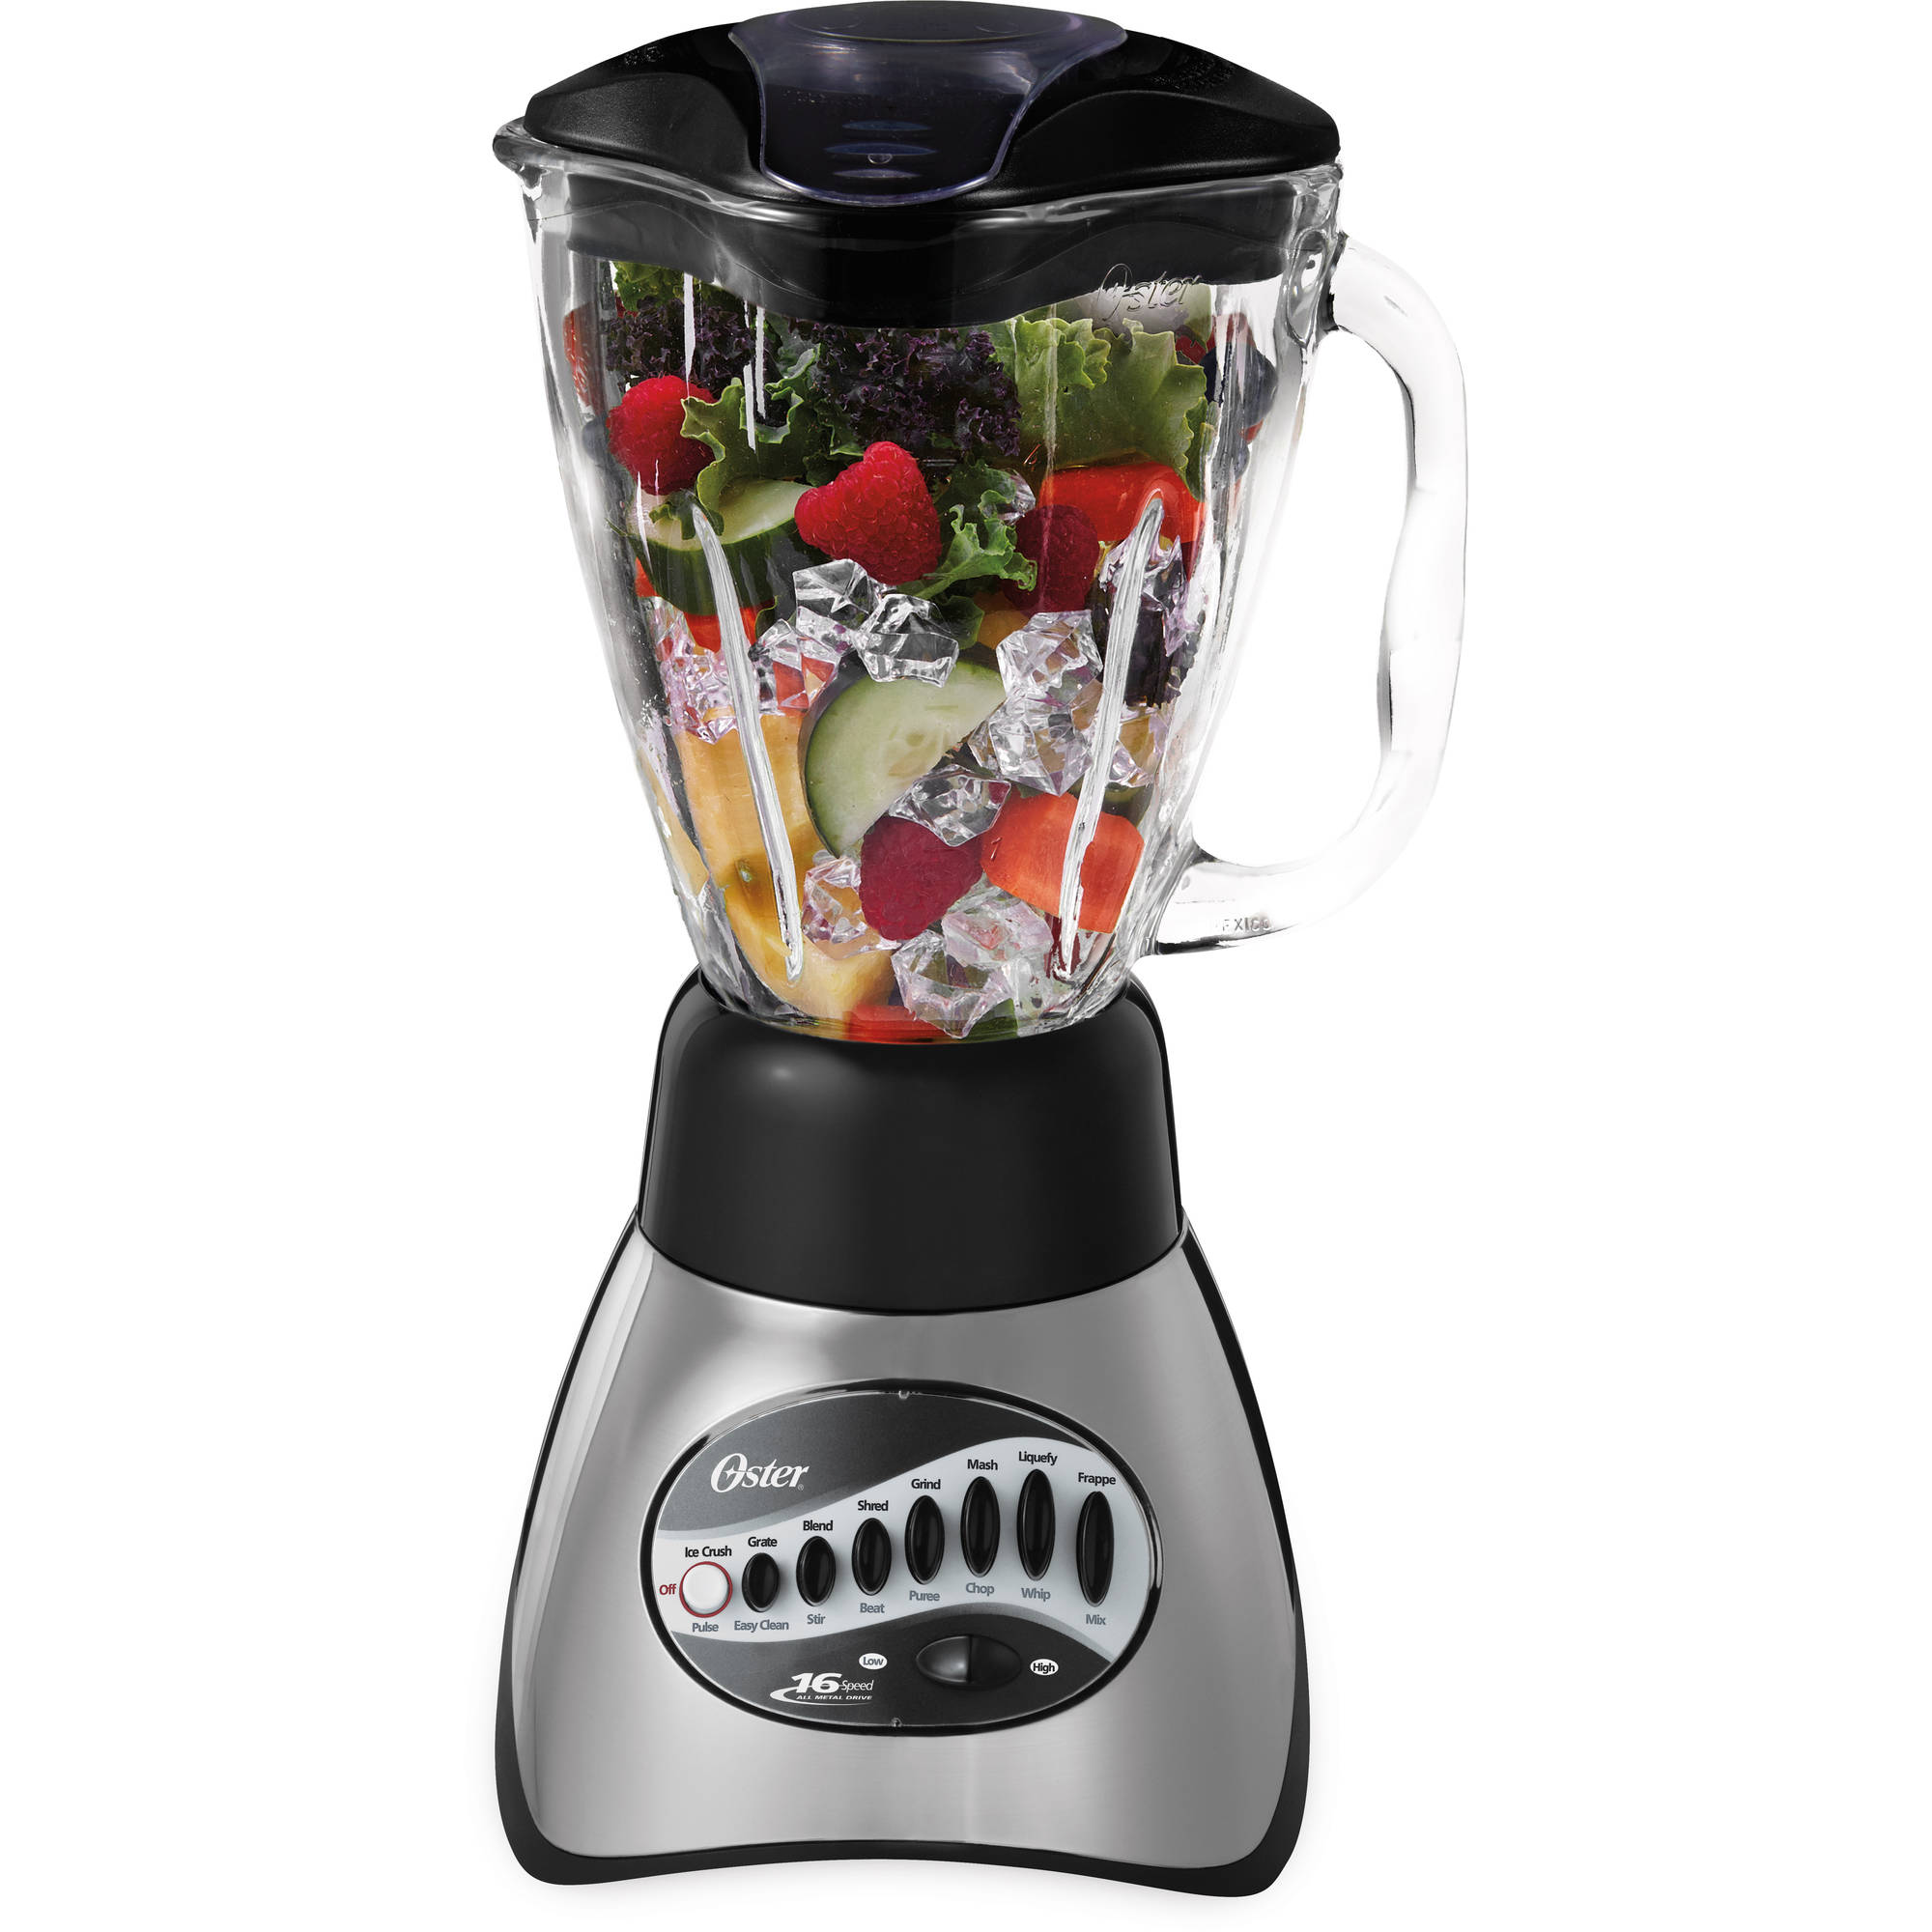 Oster Precise Blend 200  16 Speed Blender Gray (006812-001-NP0)